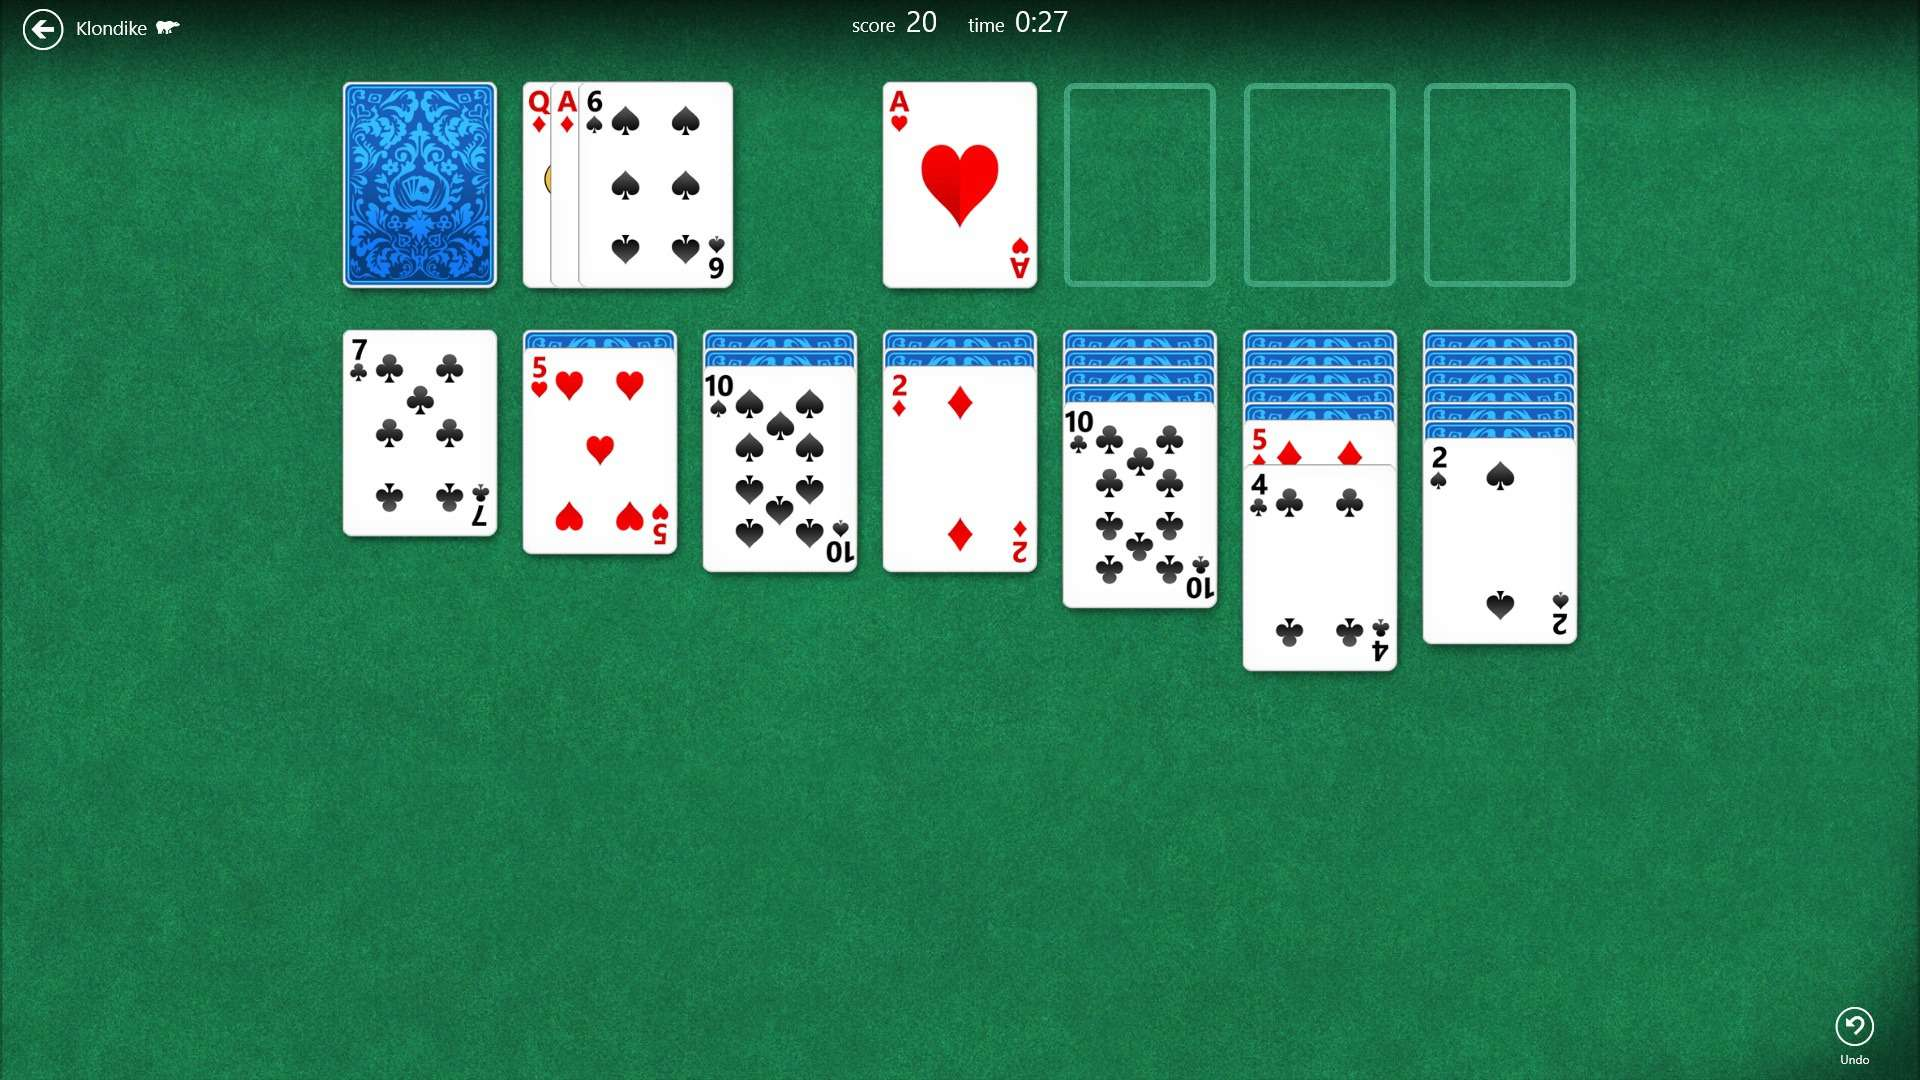 How to play Windows games like Minesweeper, Solitaire, FreeCell on Windows 8 - gHacks Tech News